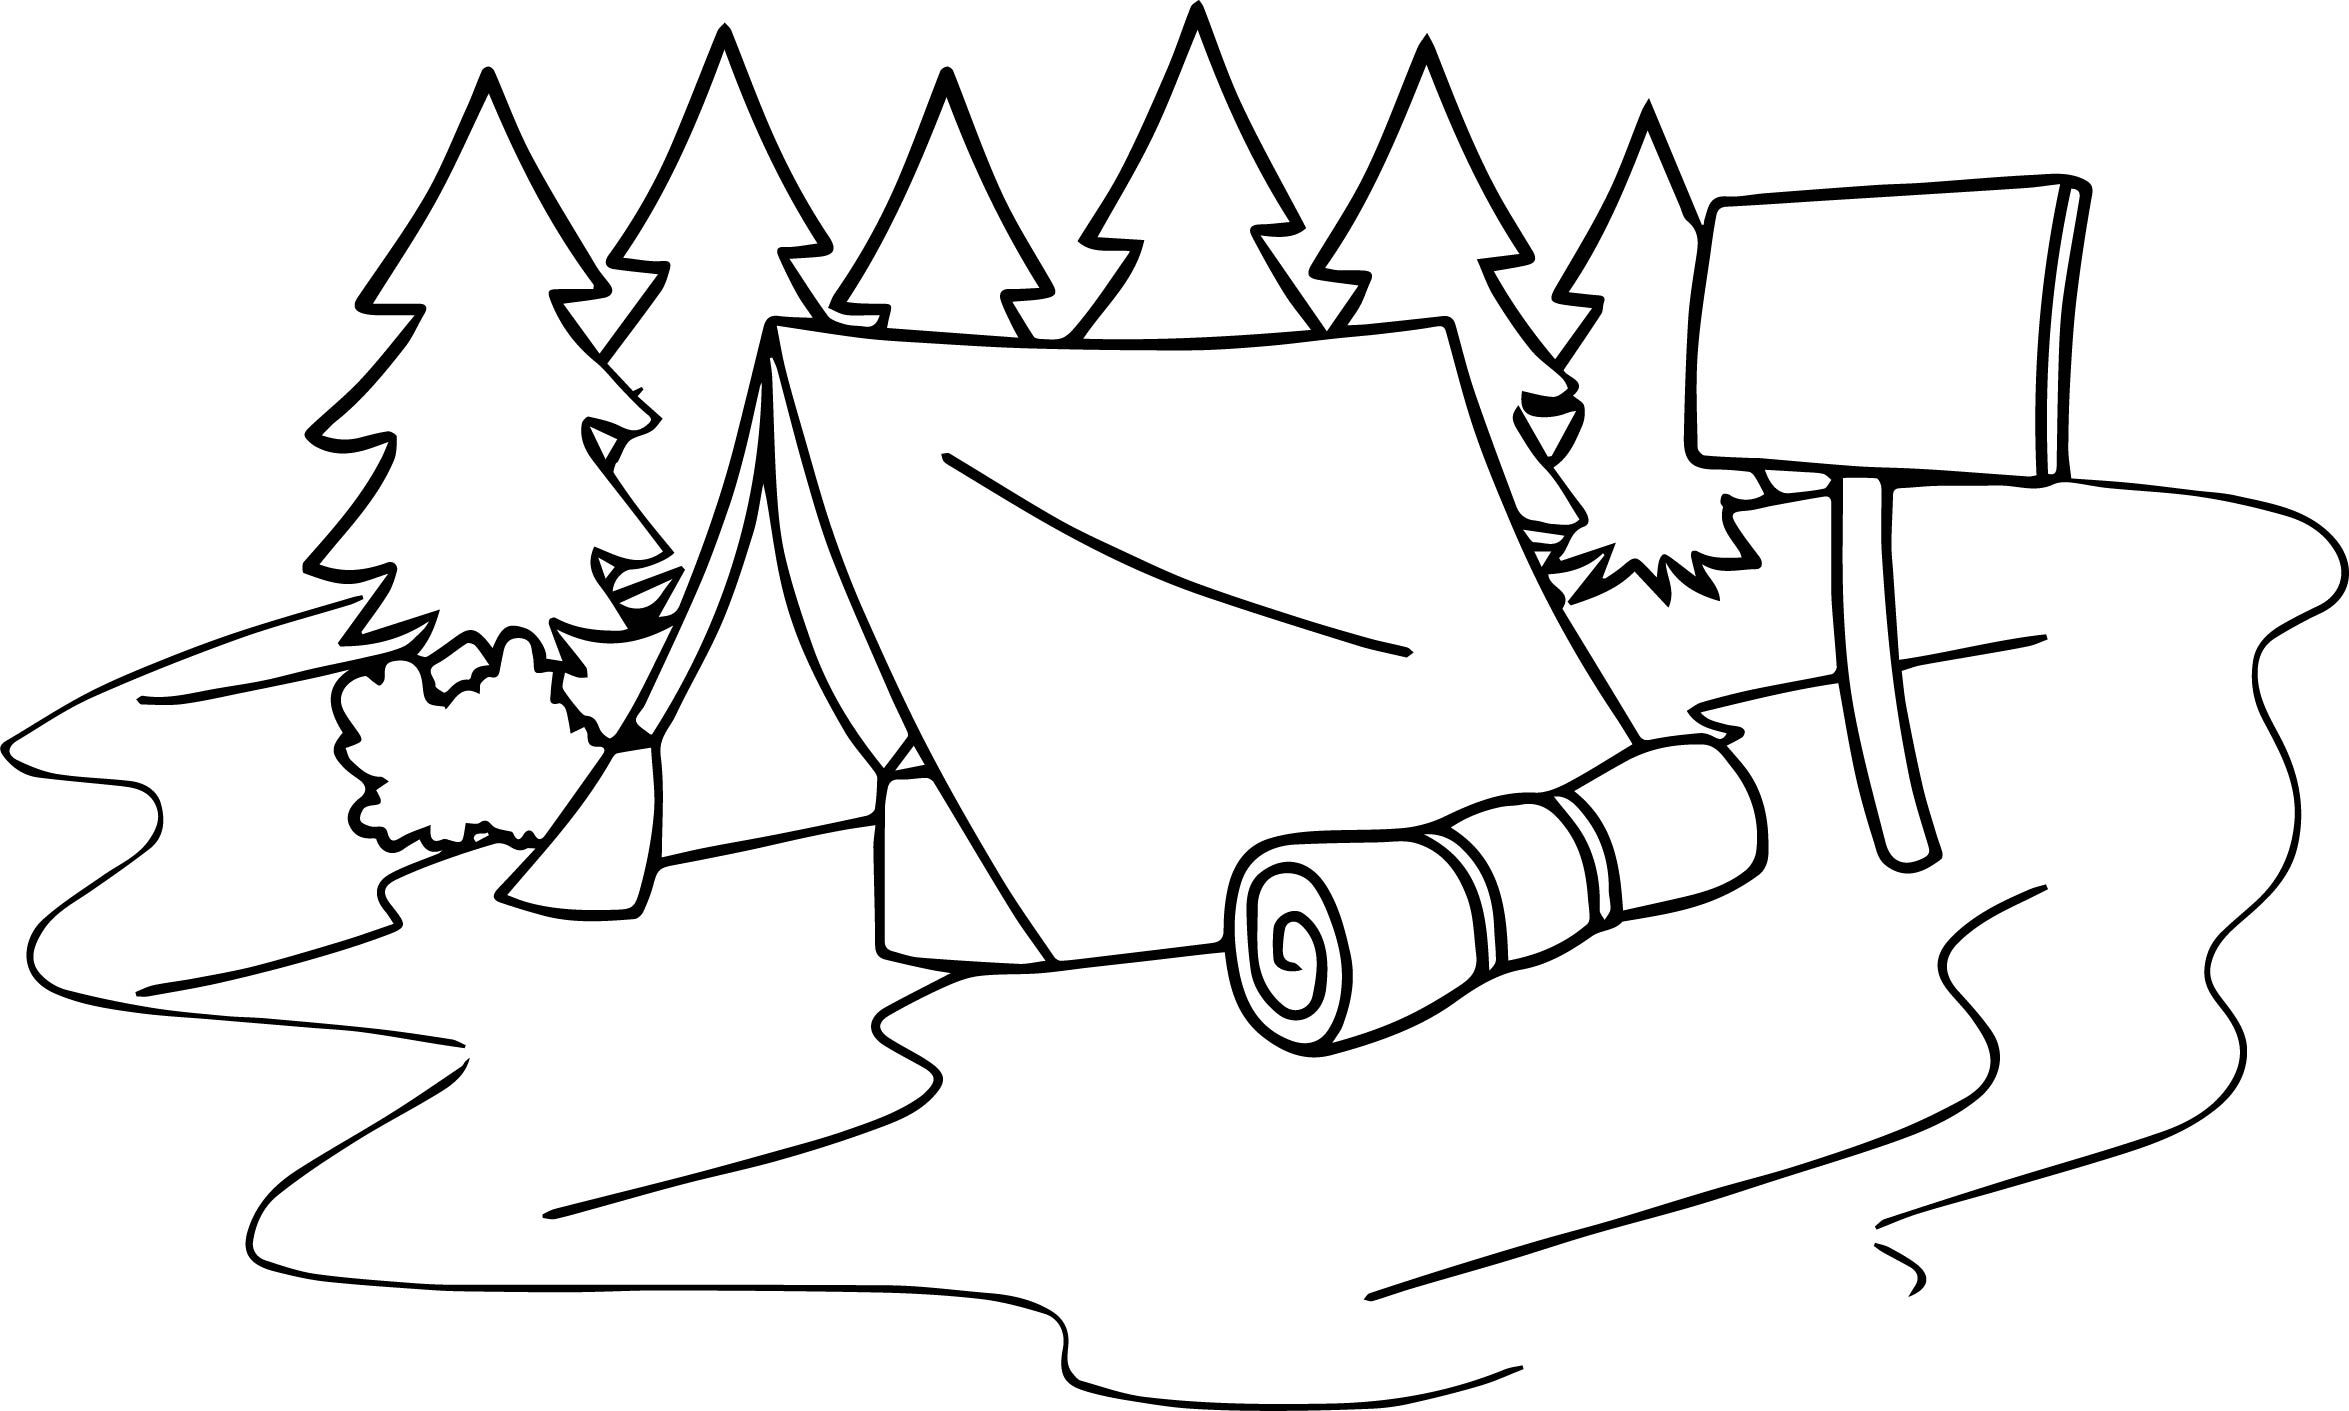 Awesome Summer Camp Tent Sleeping Bag Camping Coloring Page Camping Coloring Pages Sleeping Bags Camping Coloring Pages Inspirational